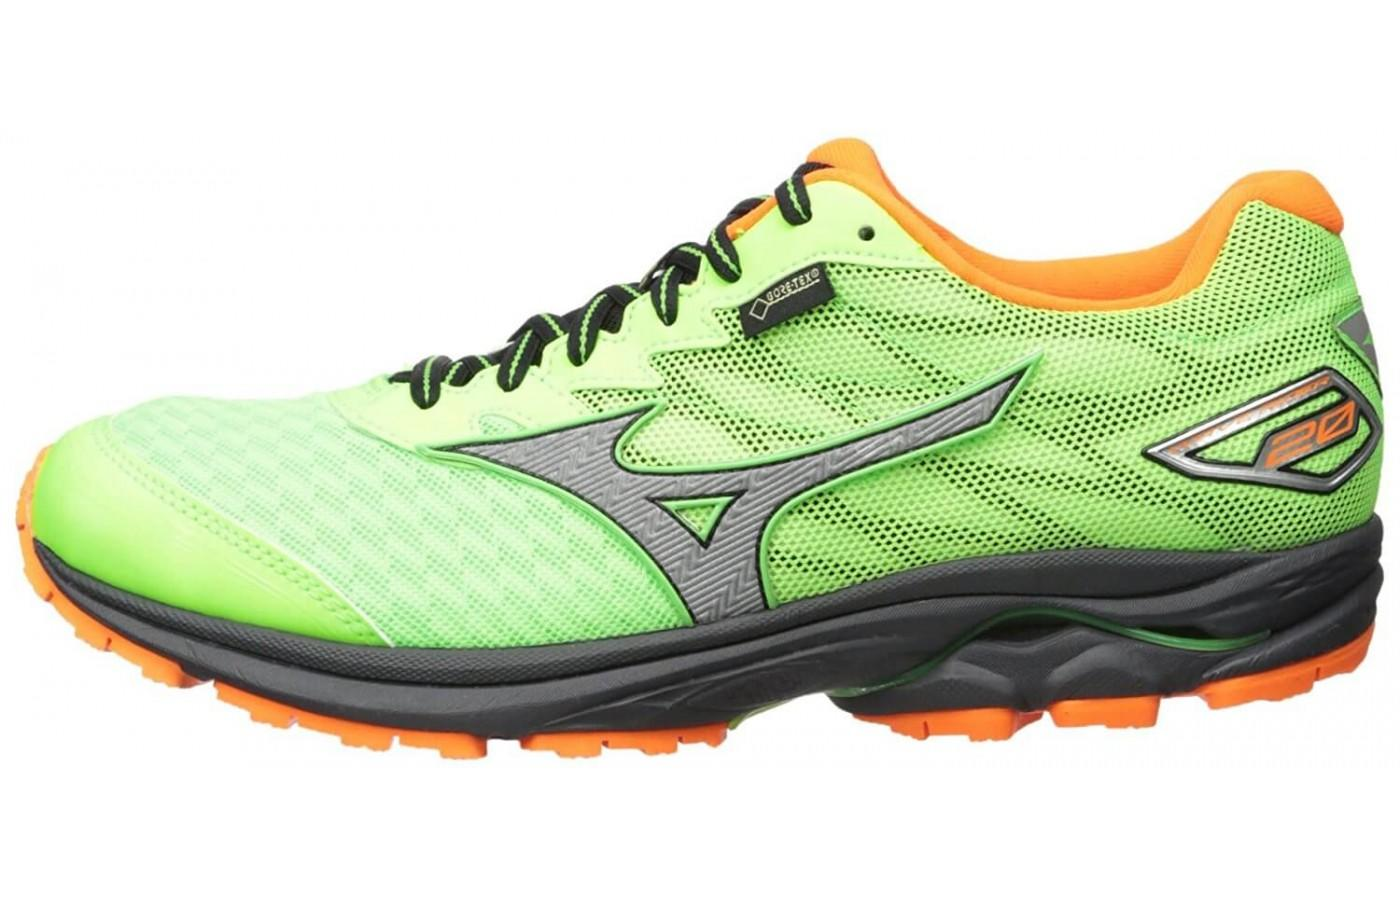 Mizuno Wave Rider 20 GTX comes in a flashy green and orange color option